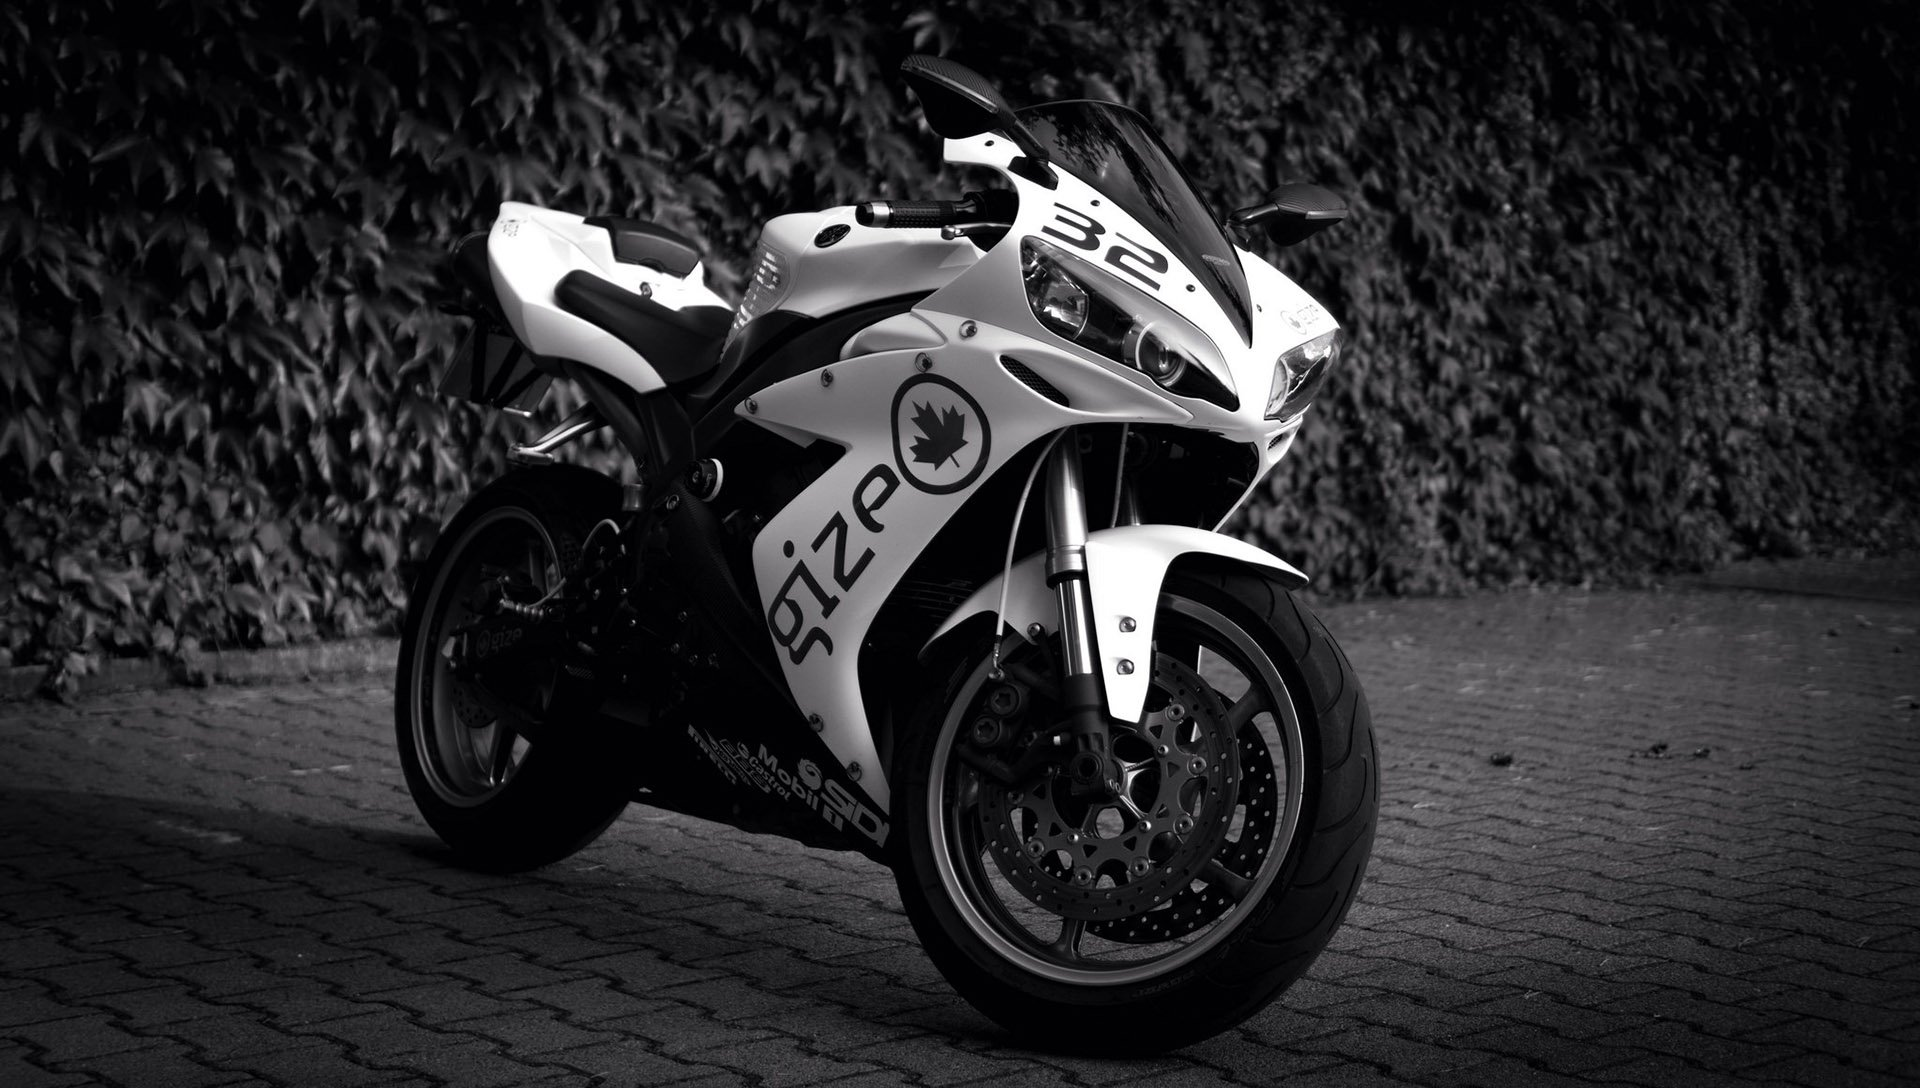 Yamaha R1 Wallpaper   HD Wallpapers Backgrounds of Your Choice 1920x1088